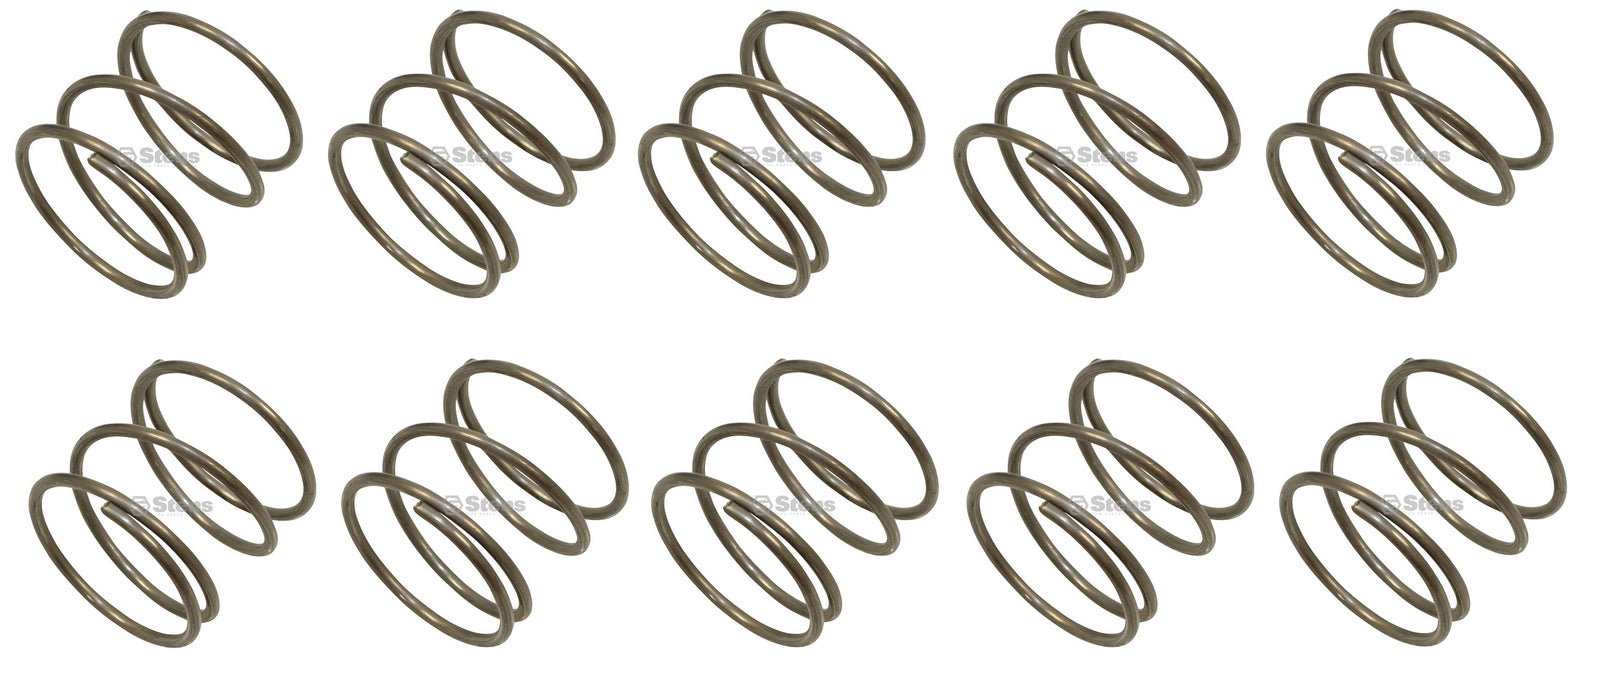 10 Pack Stens 385-225 Trimmer Head Spring For Red Max 521819601